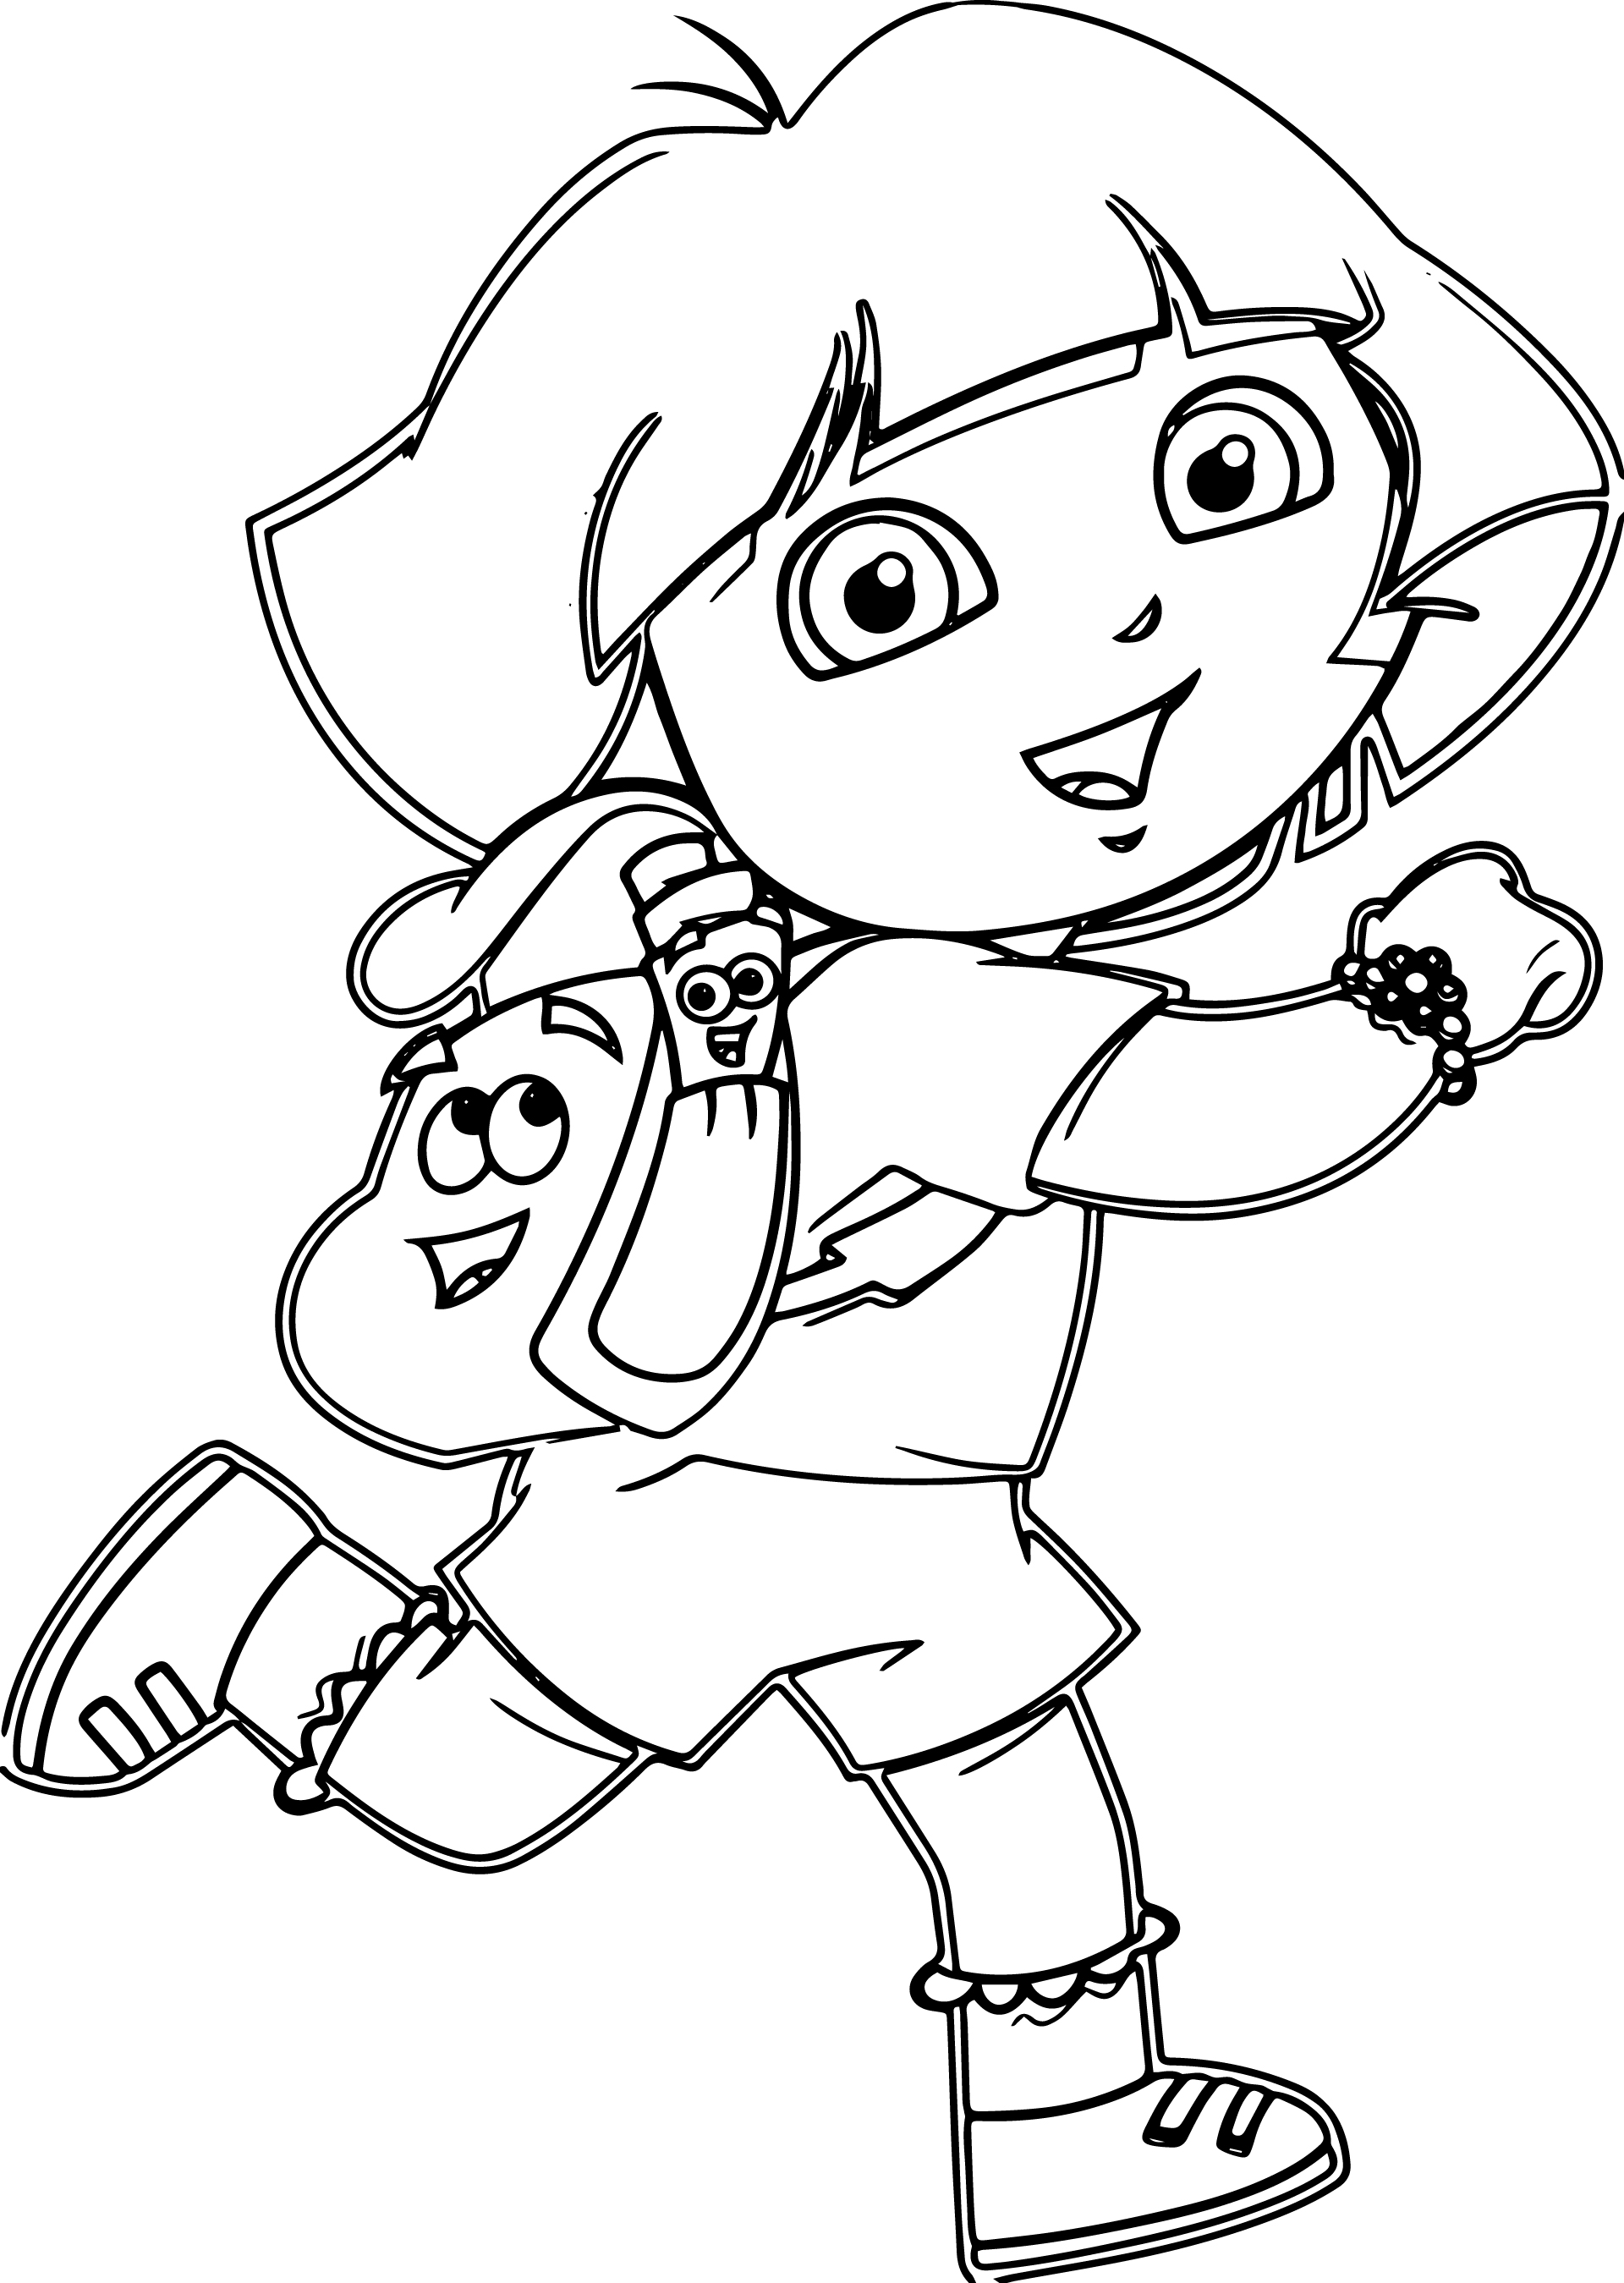 dora colouring pictures dora drawing pictures at getdrawings free download pictures colouring dora